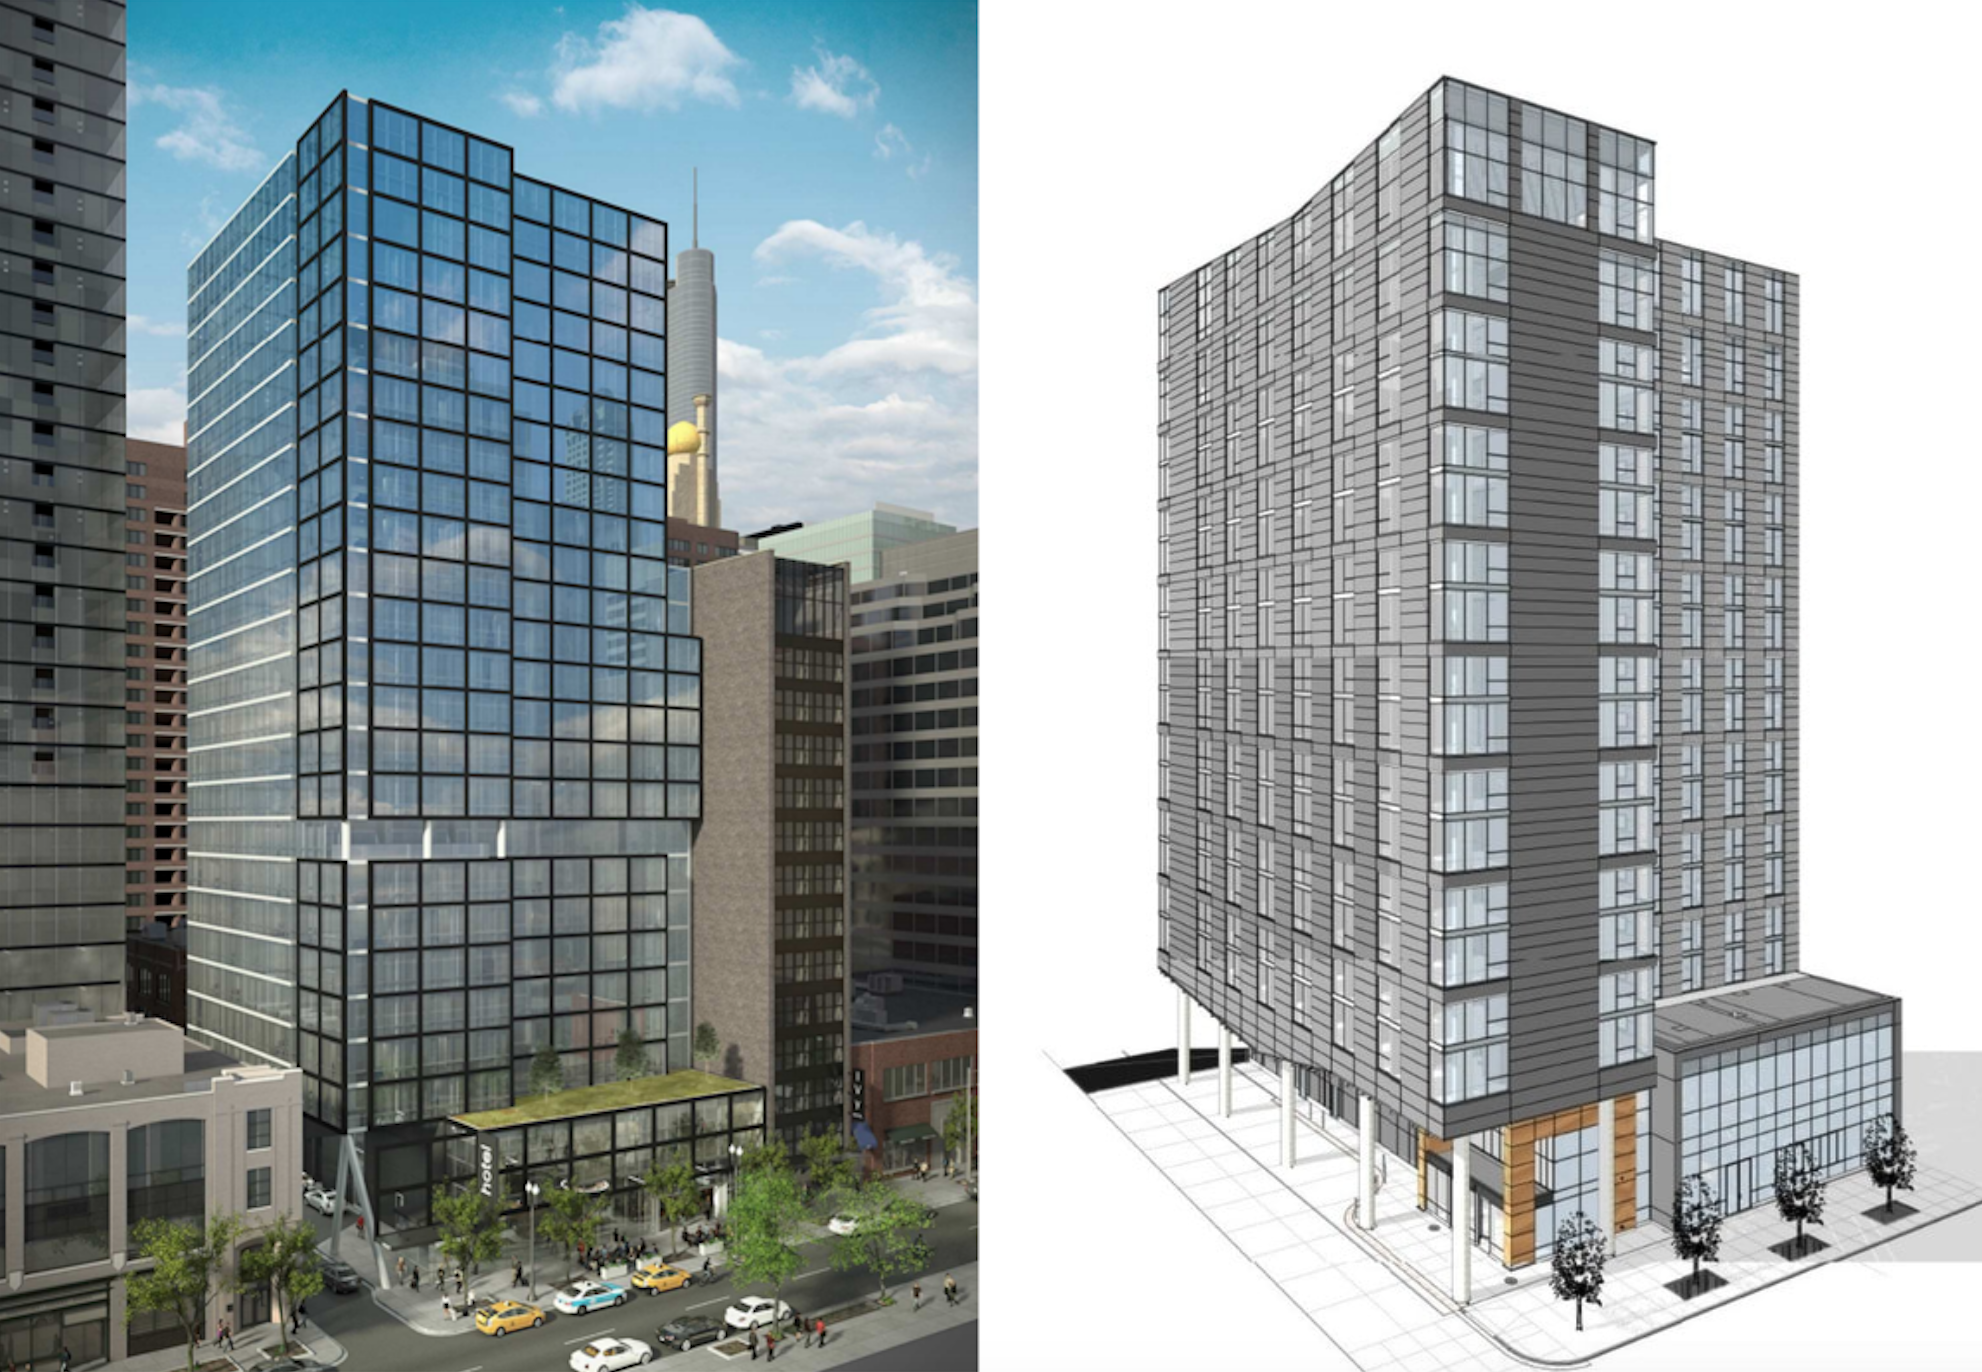 The 24 Story Iteration As Presented By Tishman In Late 2017 Left Versus An 18 Rendering Shared On Skyserpage 2016 Right